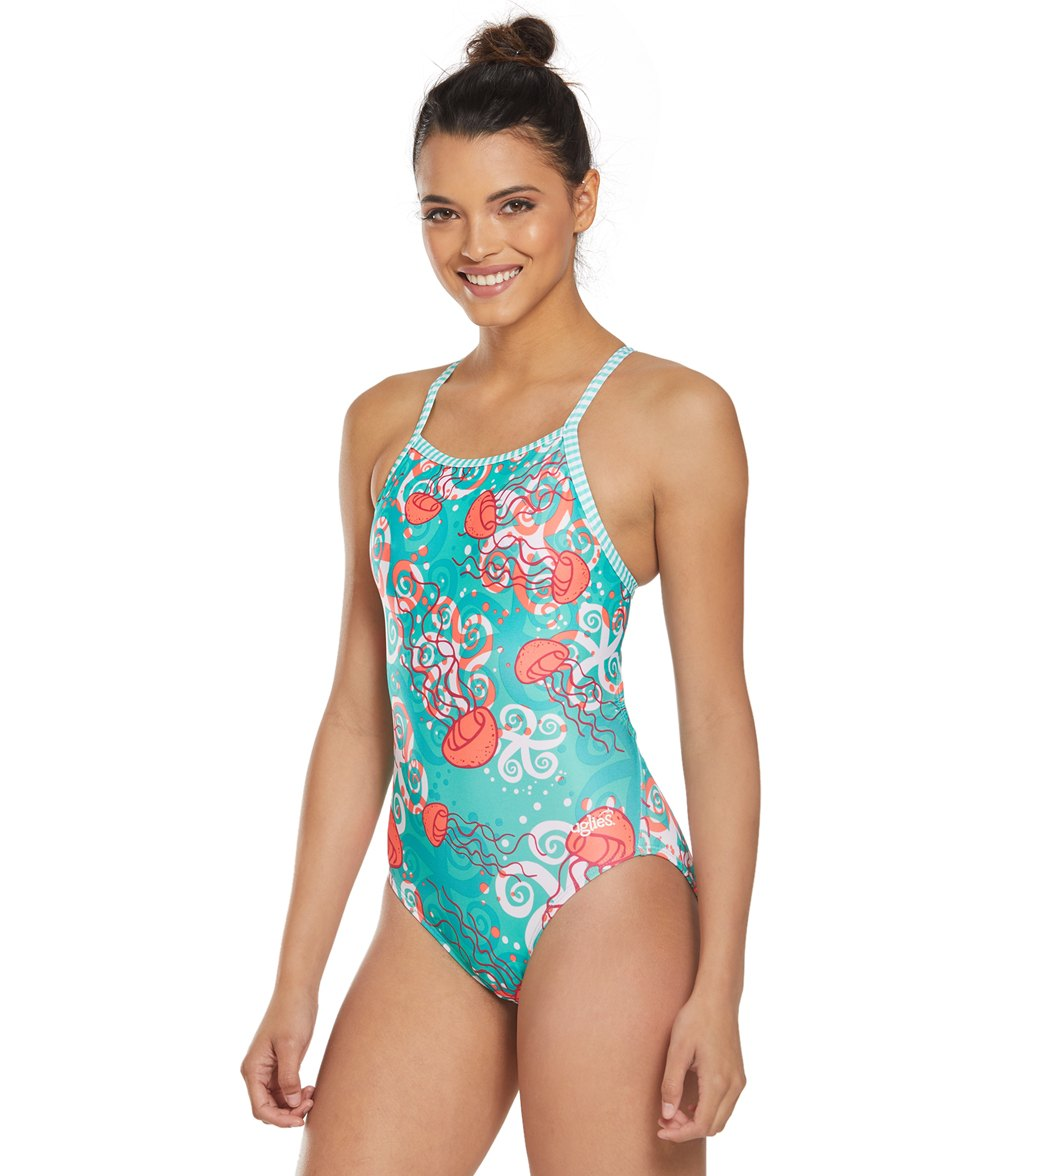 793bf89d904 Dolfin Women's Uglies Jelly V-2 Back One Piece Swimsuit at SwimOutlet.com